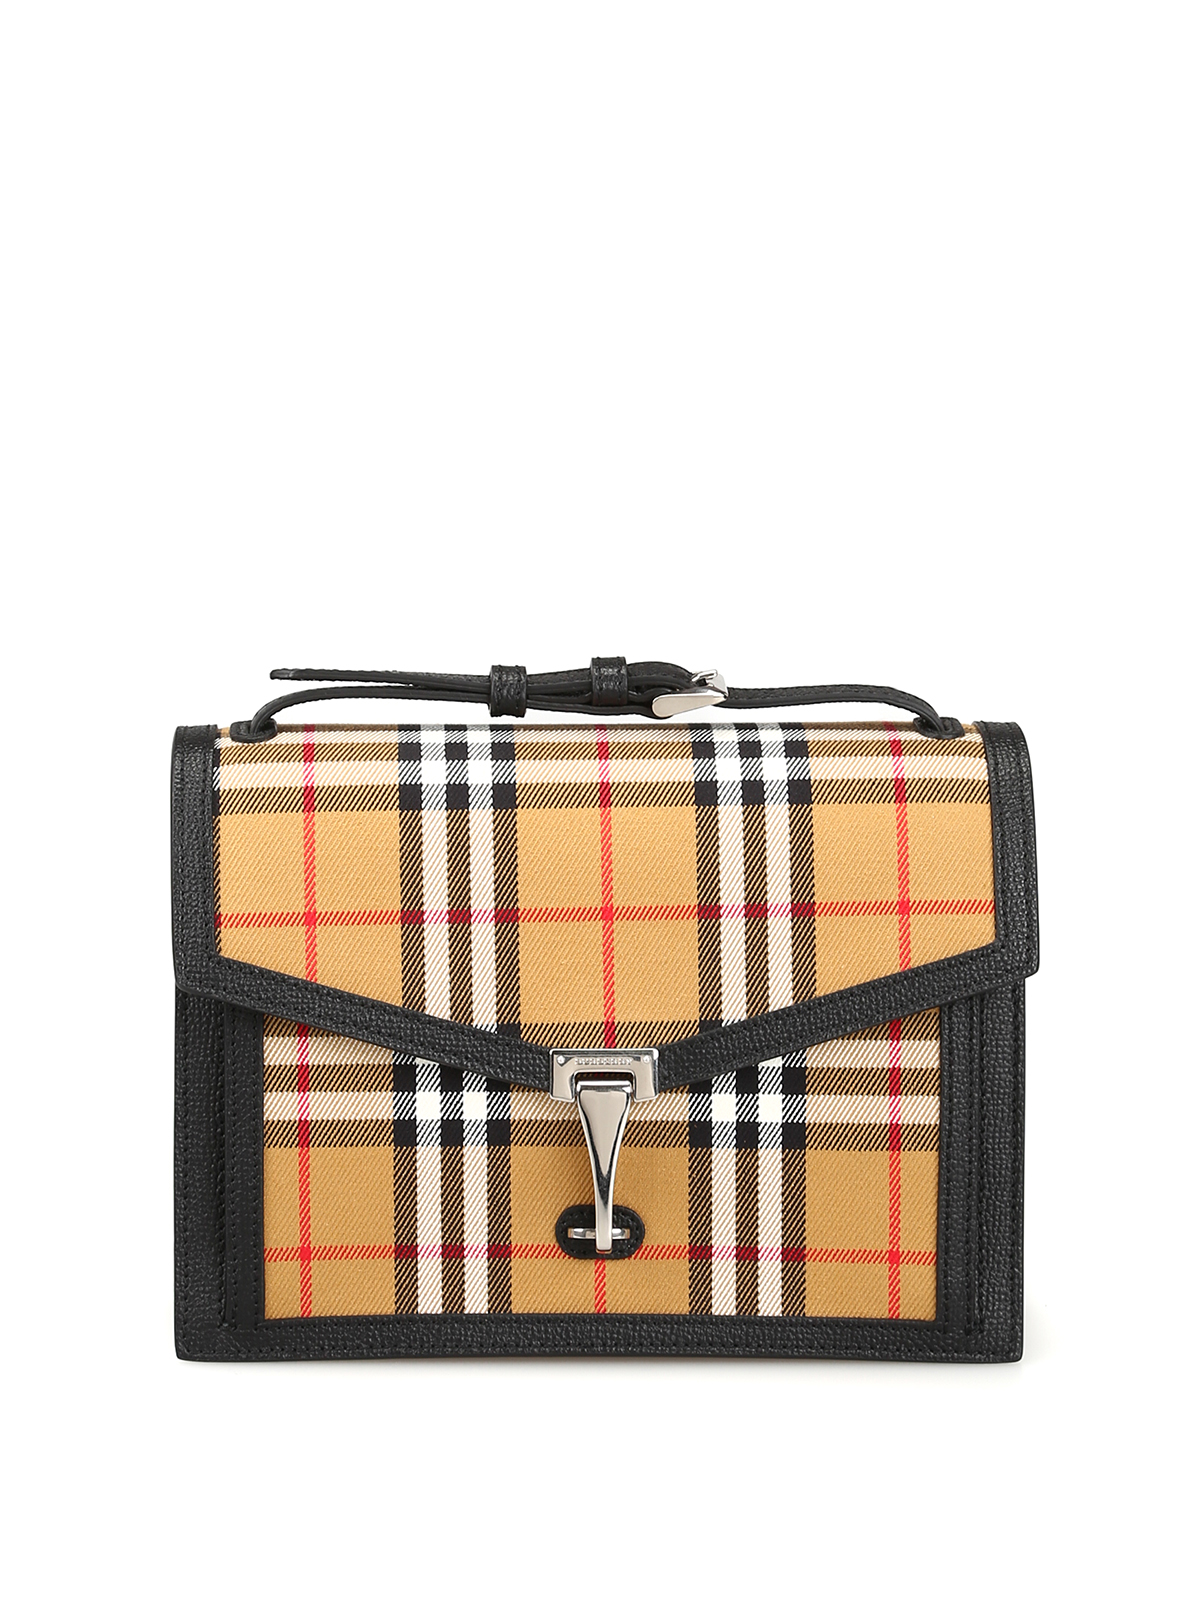 7af8619e8c4a Burberry - Macken Vintage check and leather small bag - cross body ...